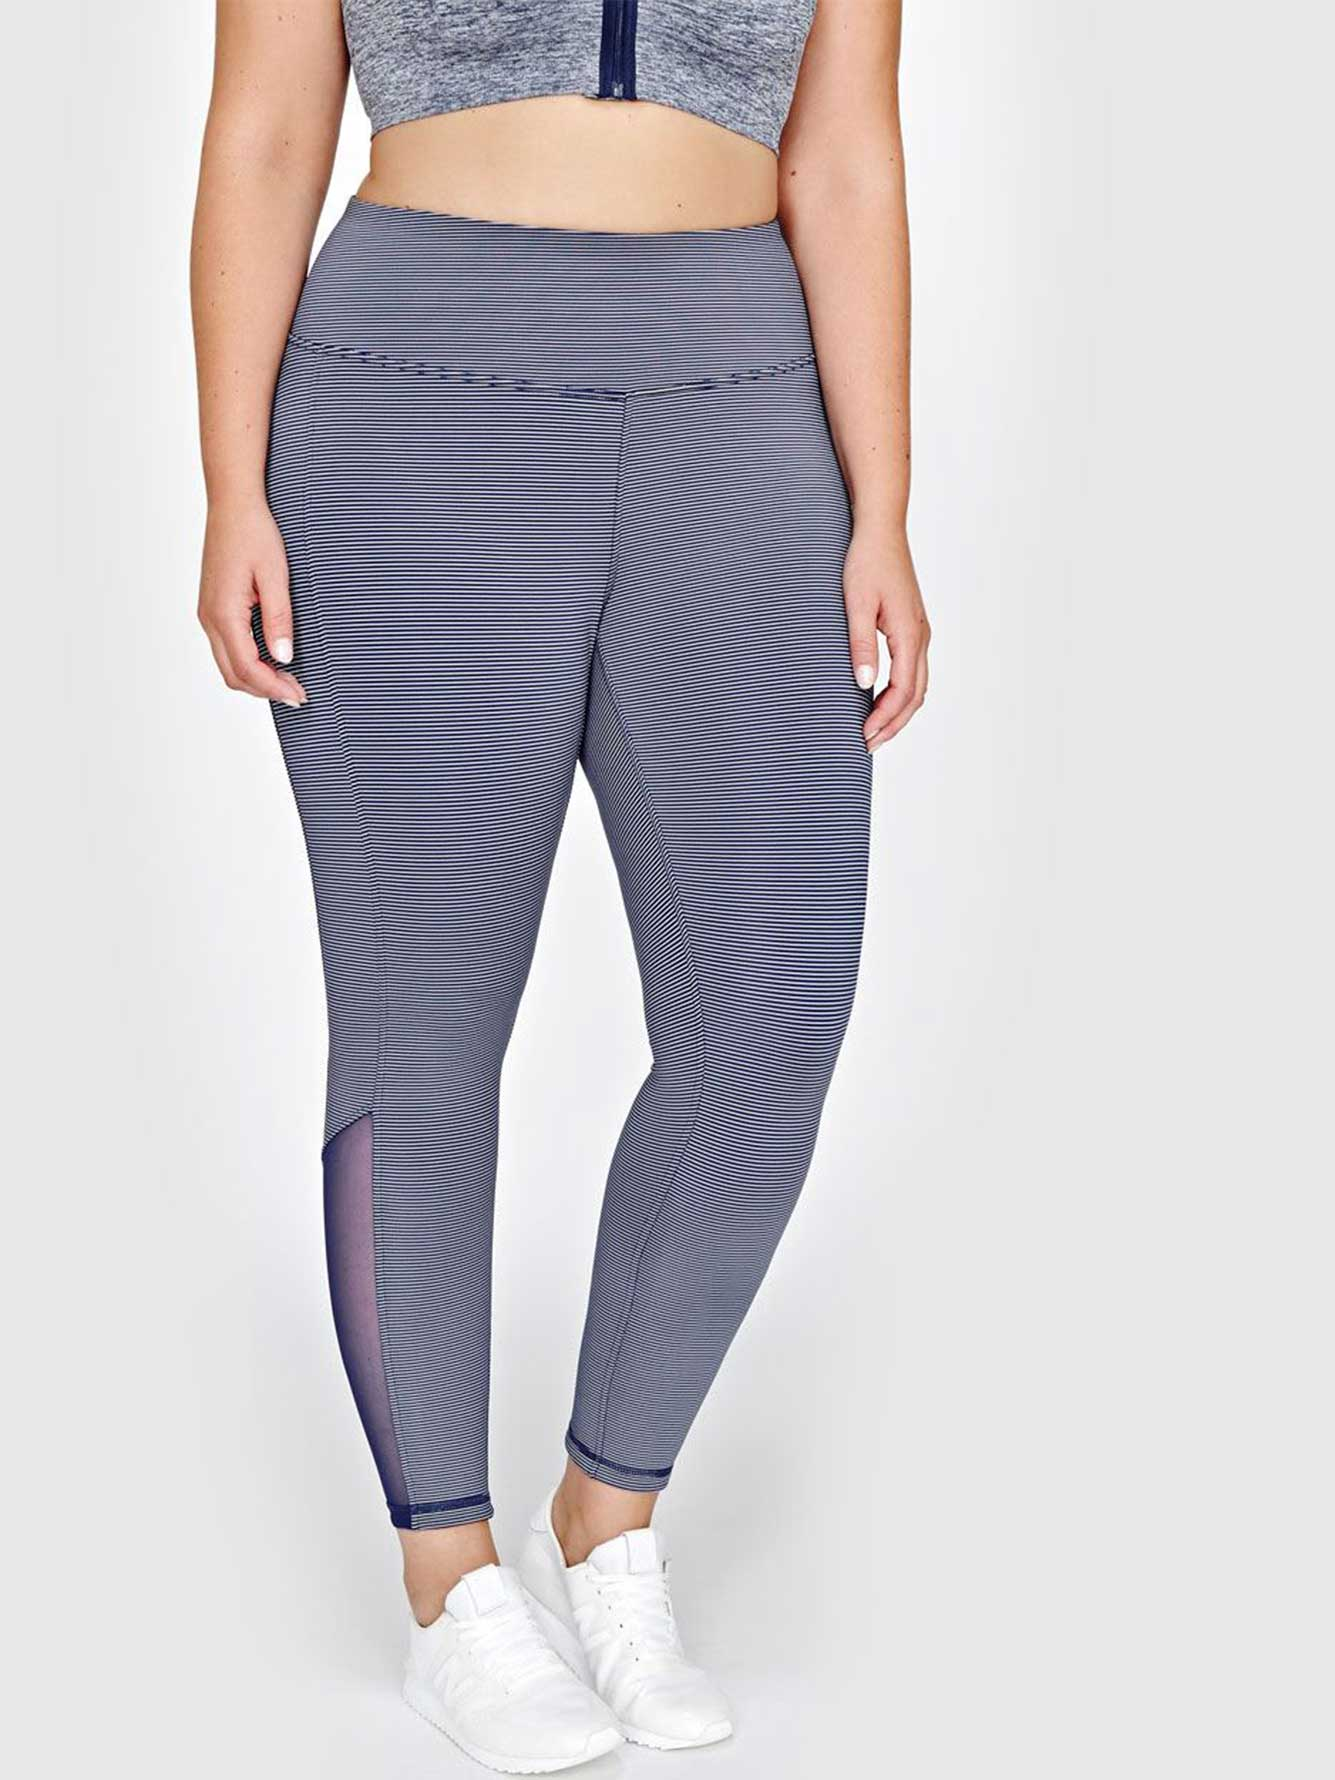 Reversible Wrap Pants with pockets bZX5plpJmV